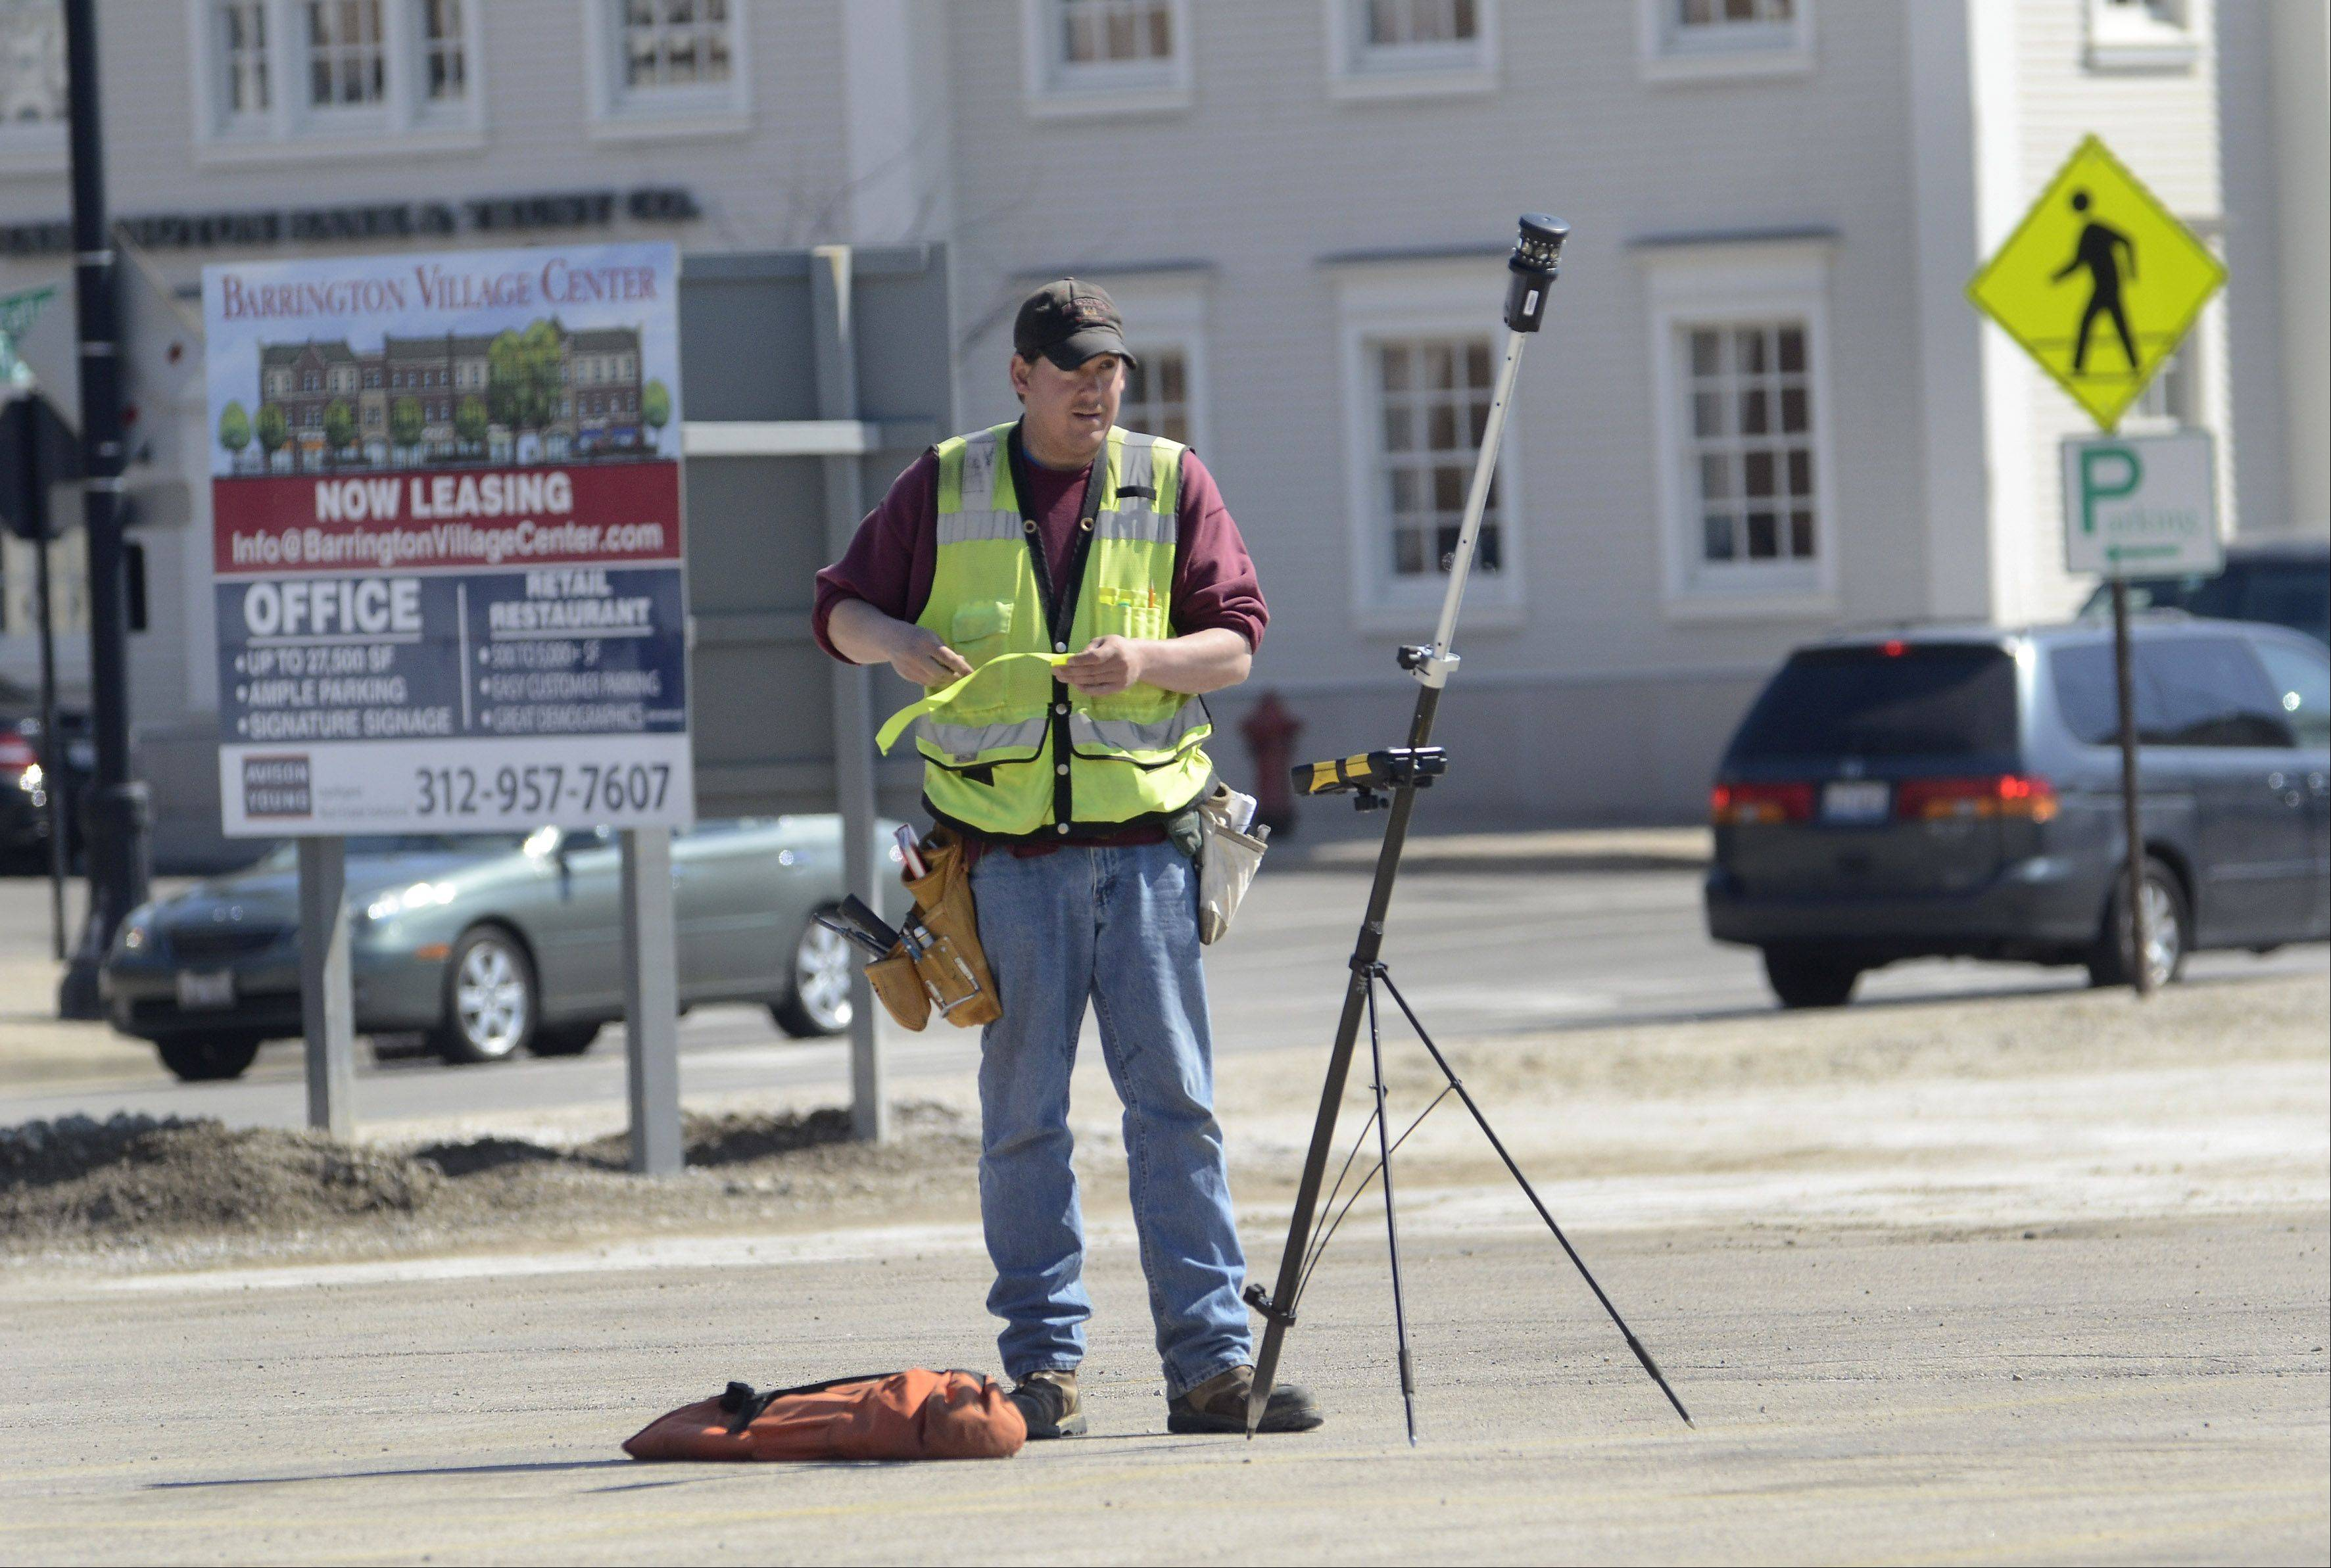 Mark Hamilton of Gewalt Hamilton Associates Inc. surveys the development site Thursday at the southwest corner of Hough and Main Streets in downtown Barrington.